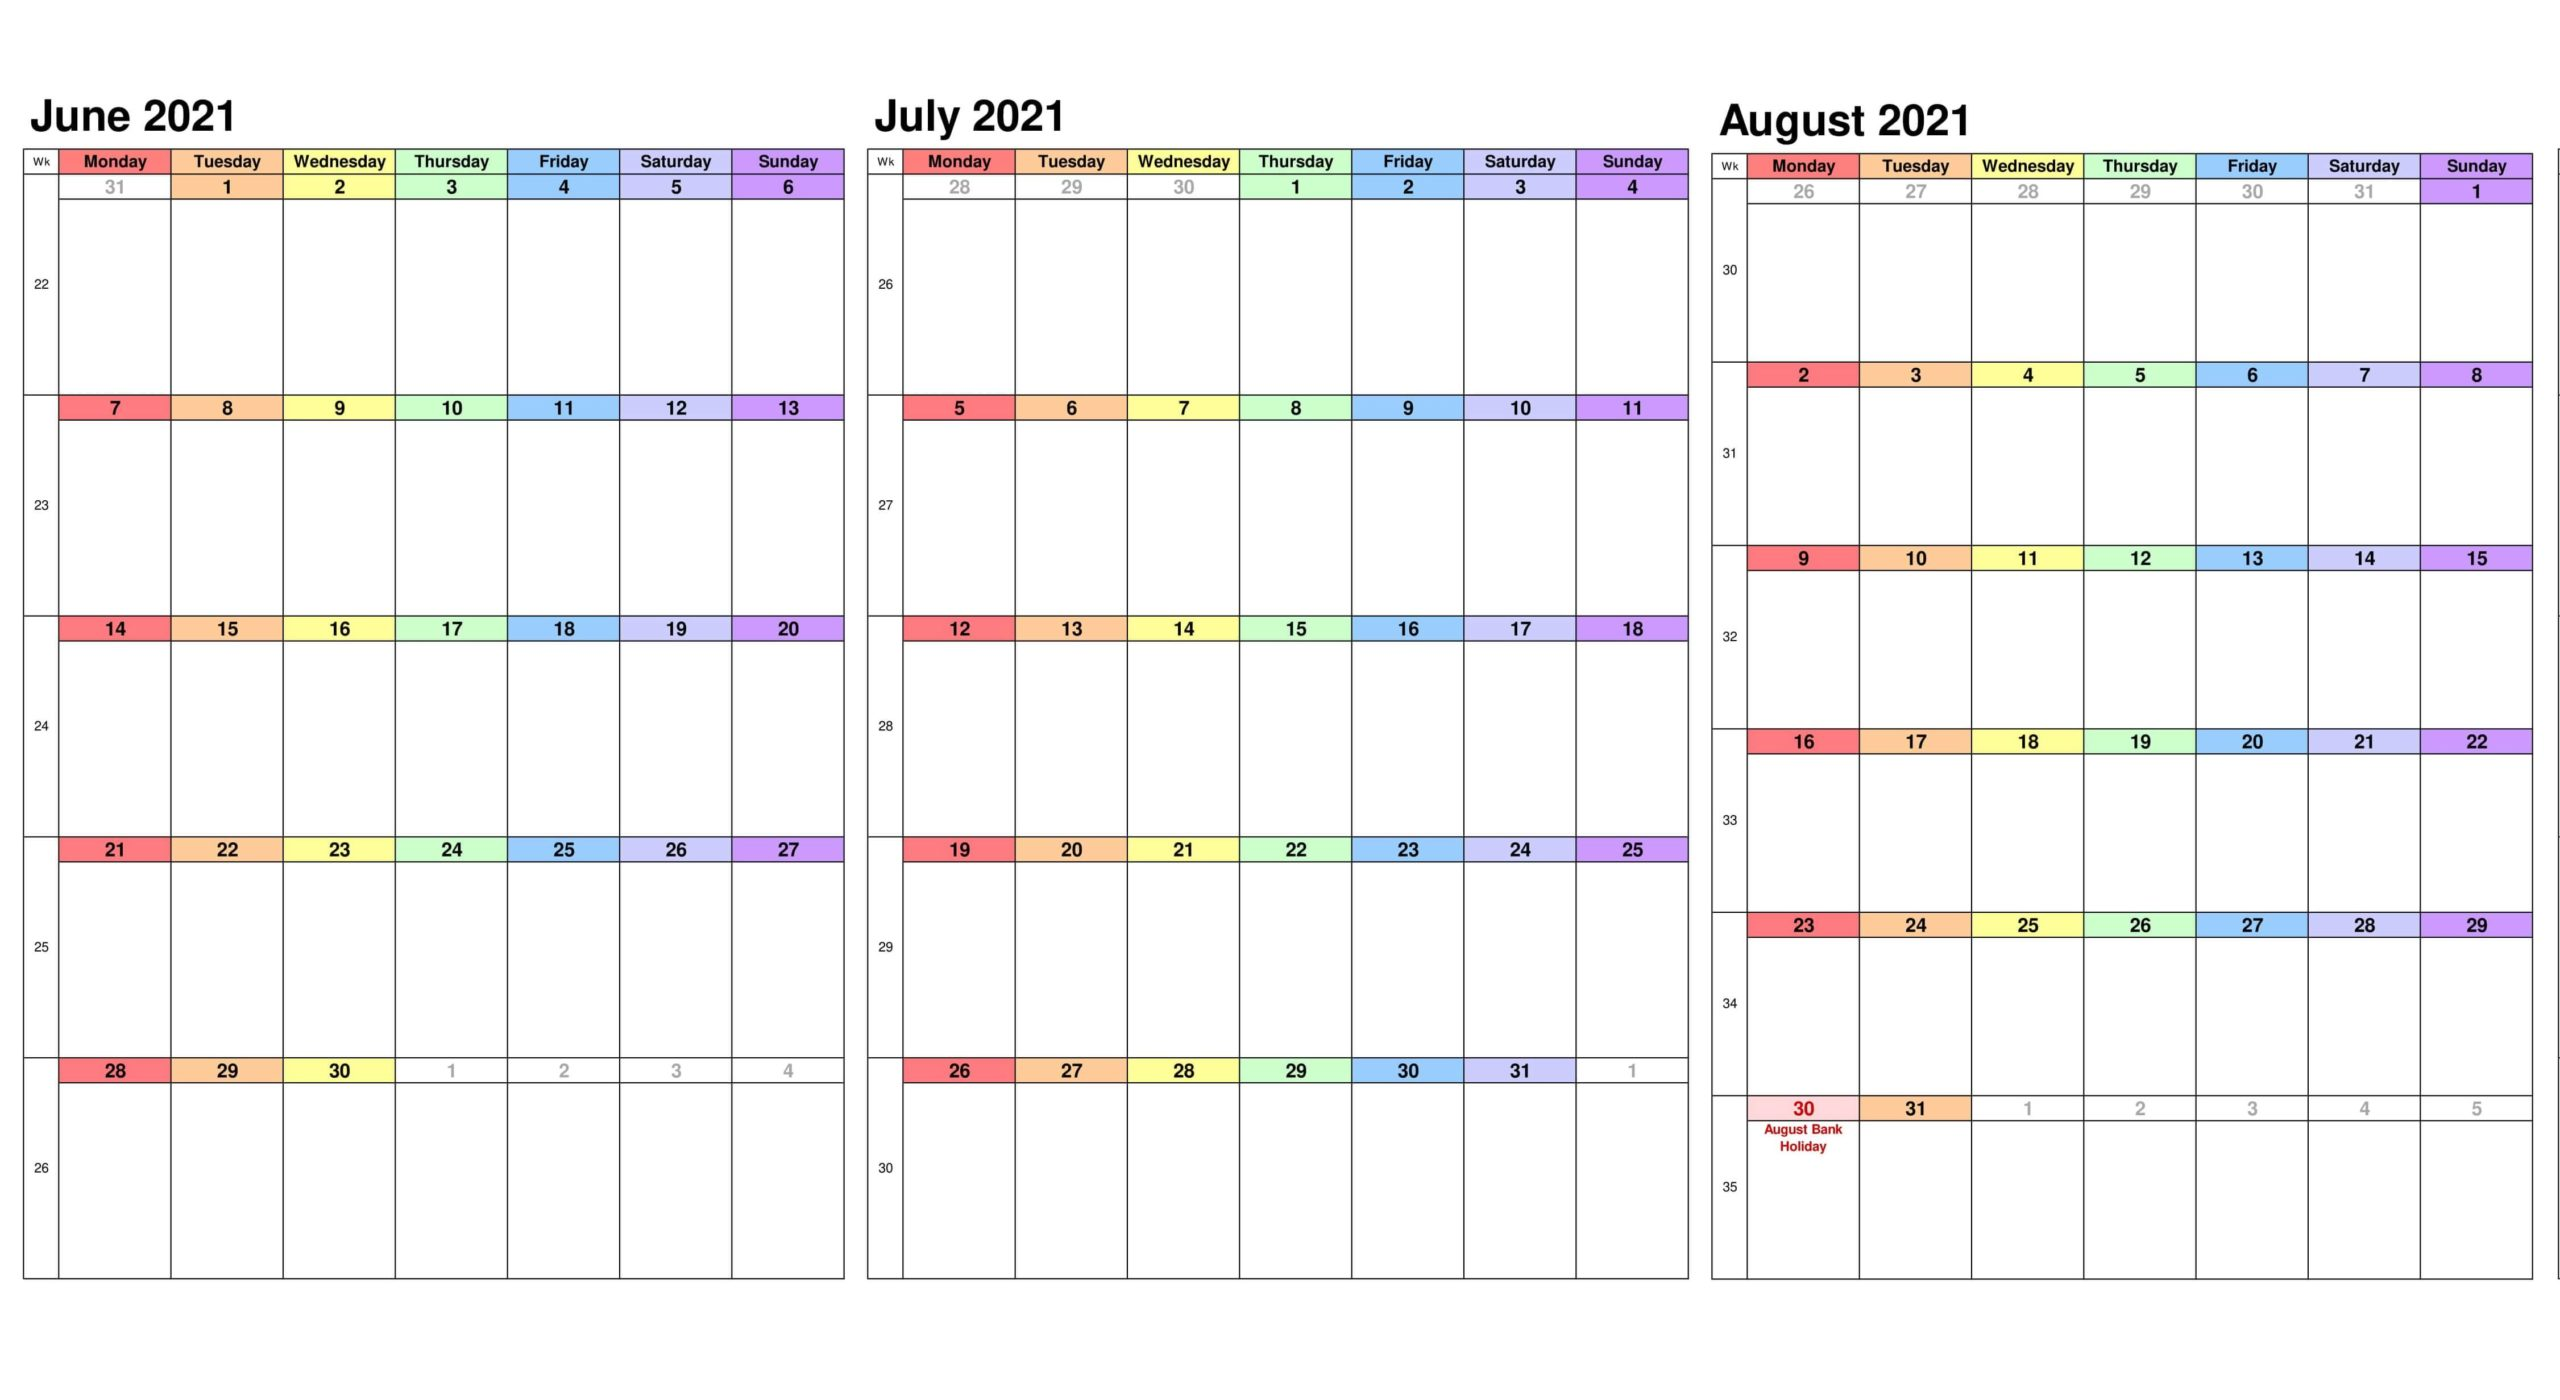 June To August 2021 Calendar With Holidays